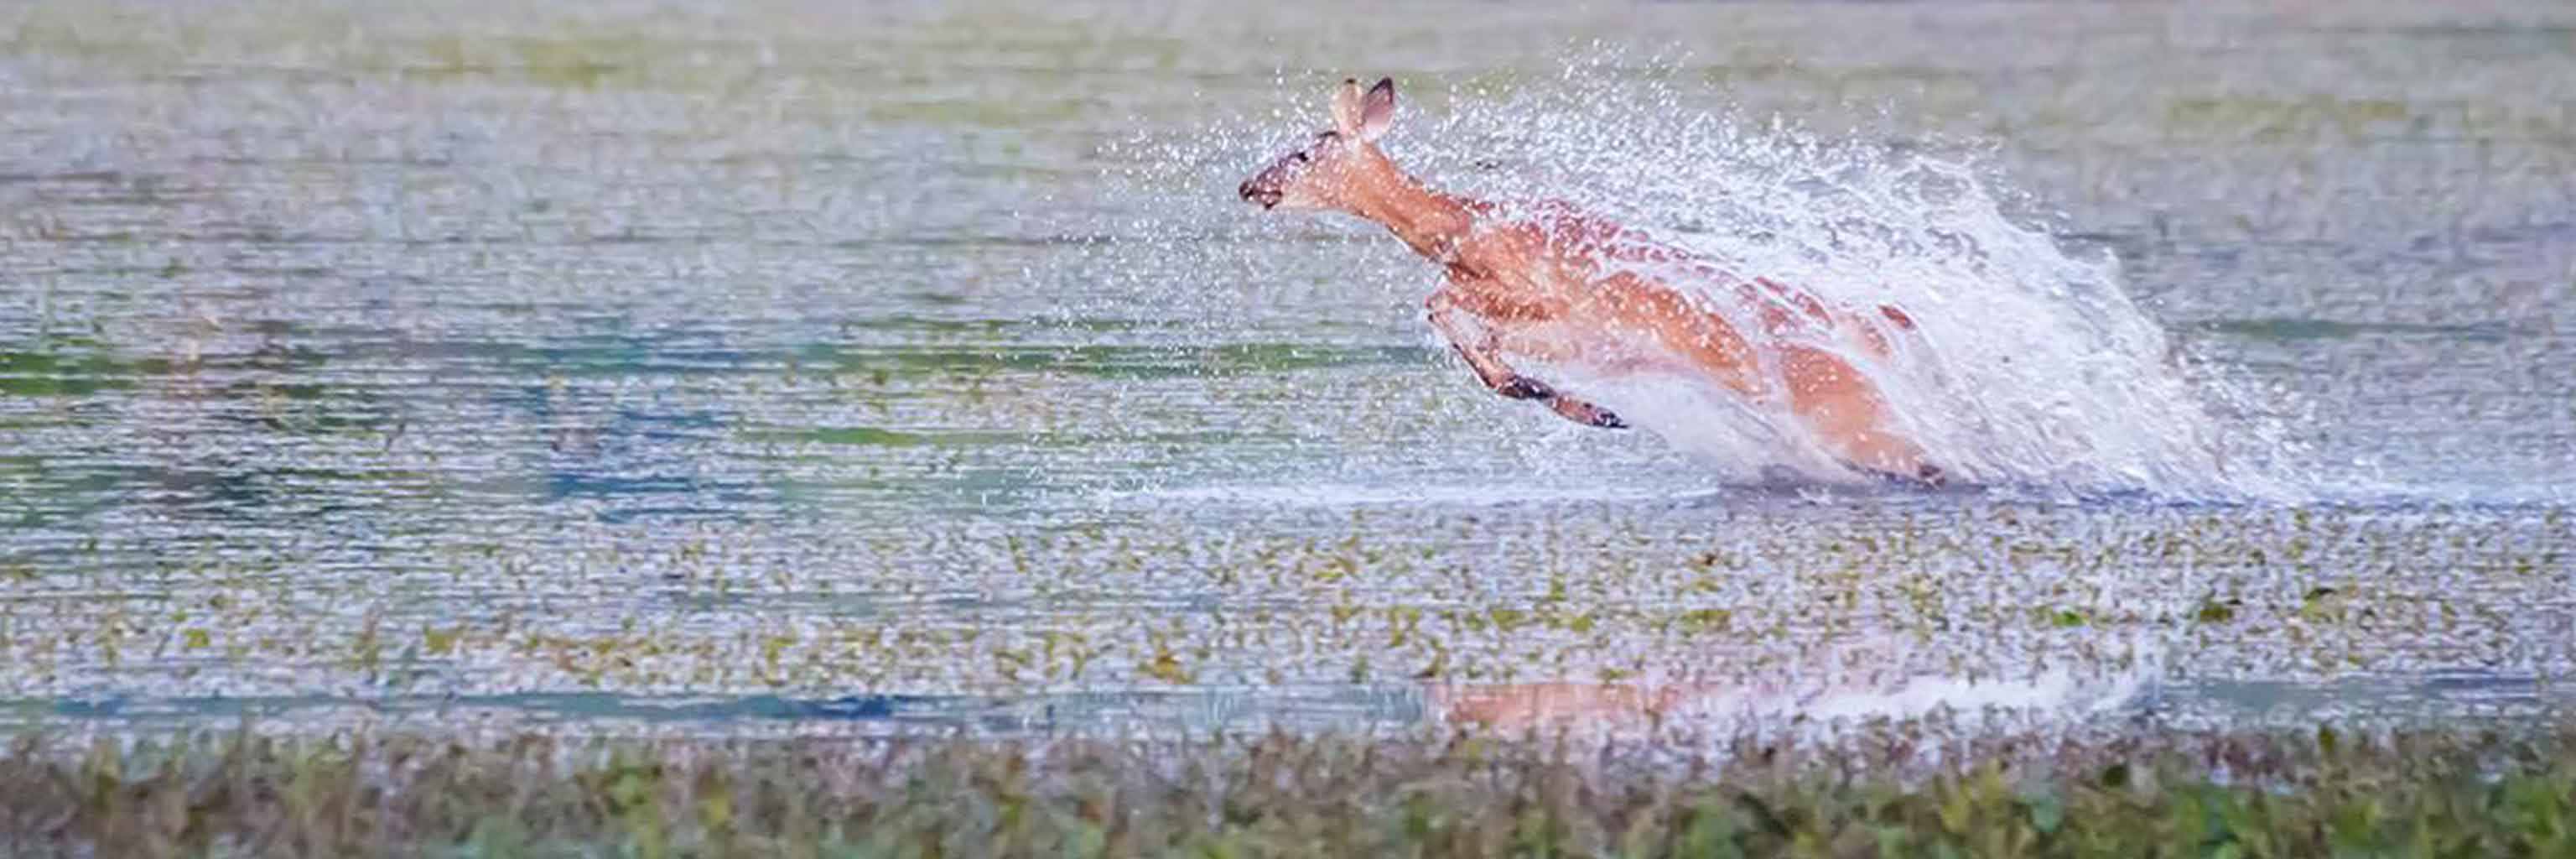 Deer splashing in a pond